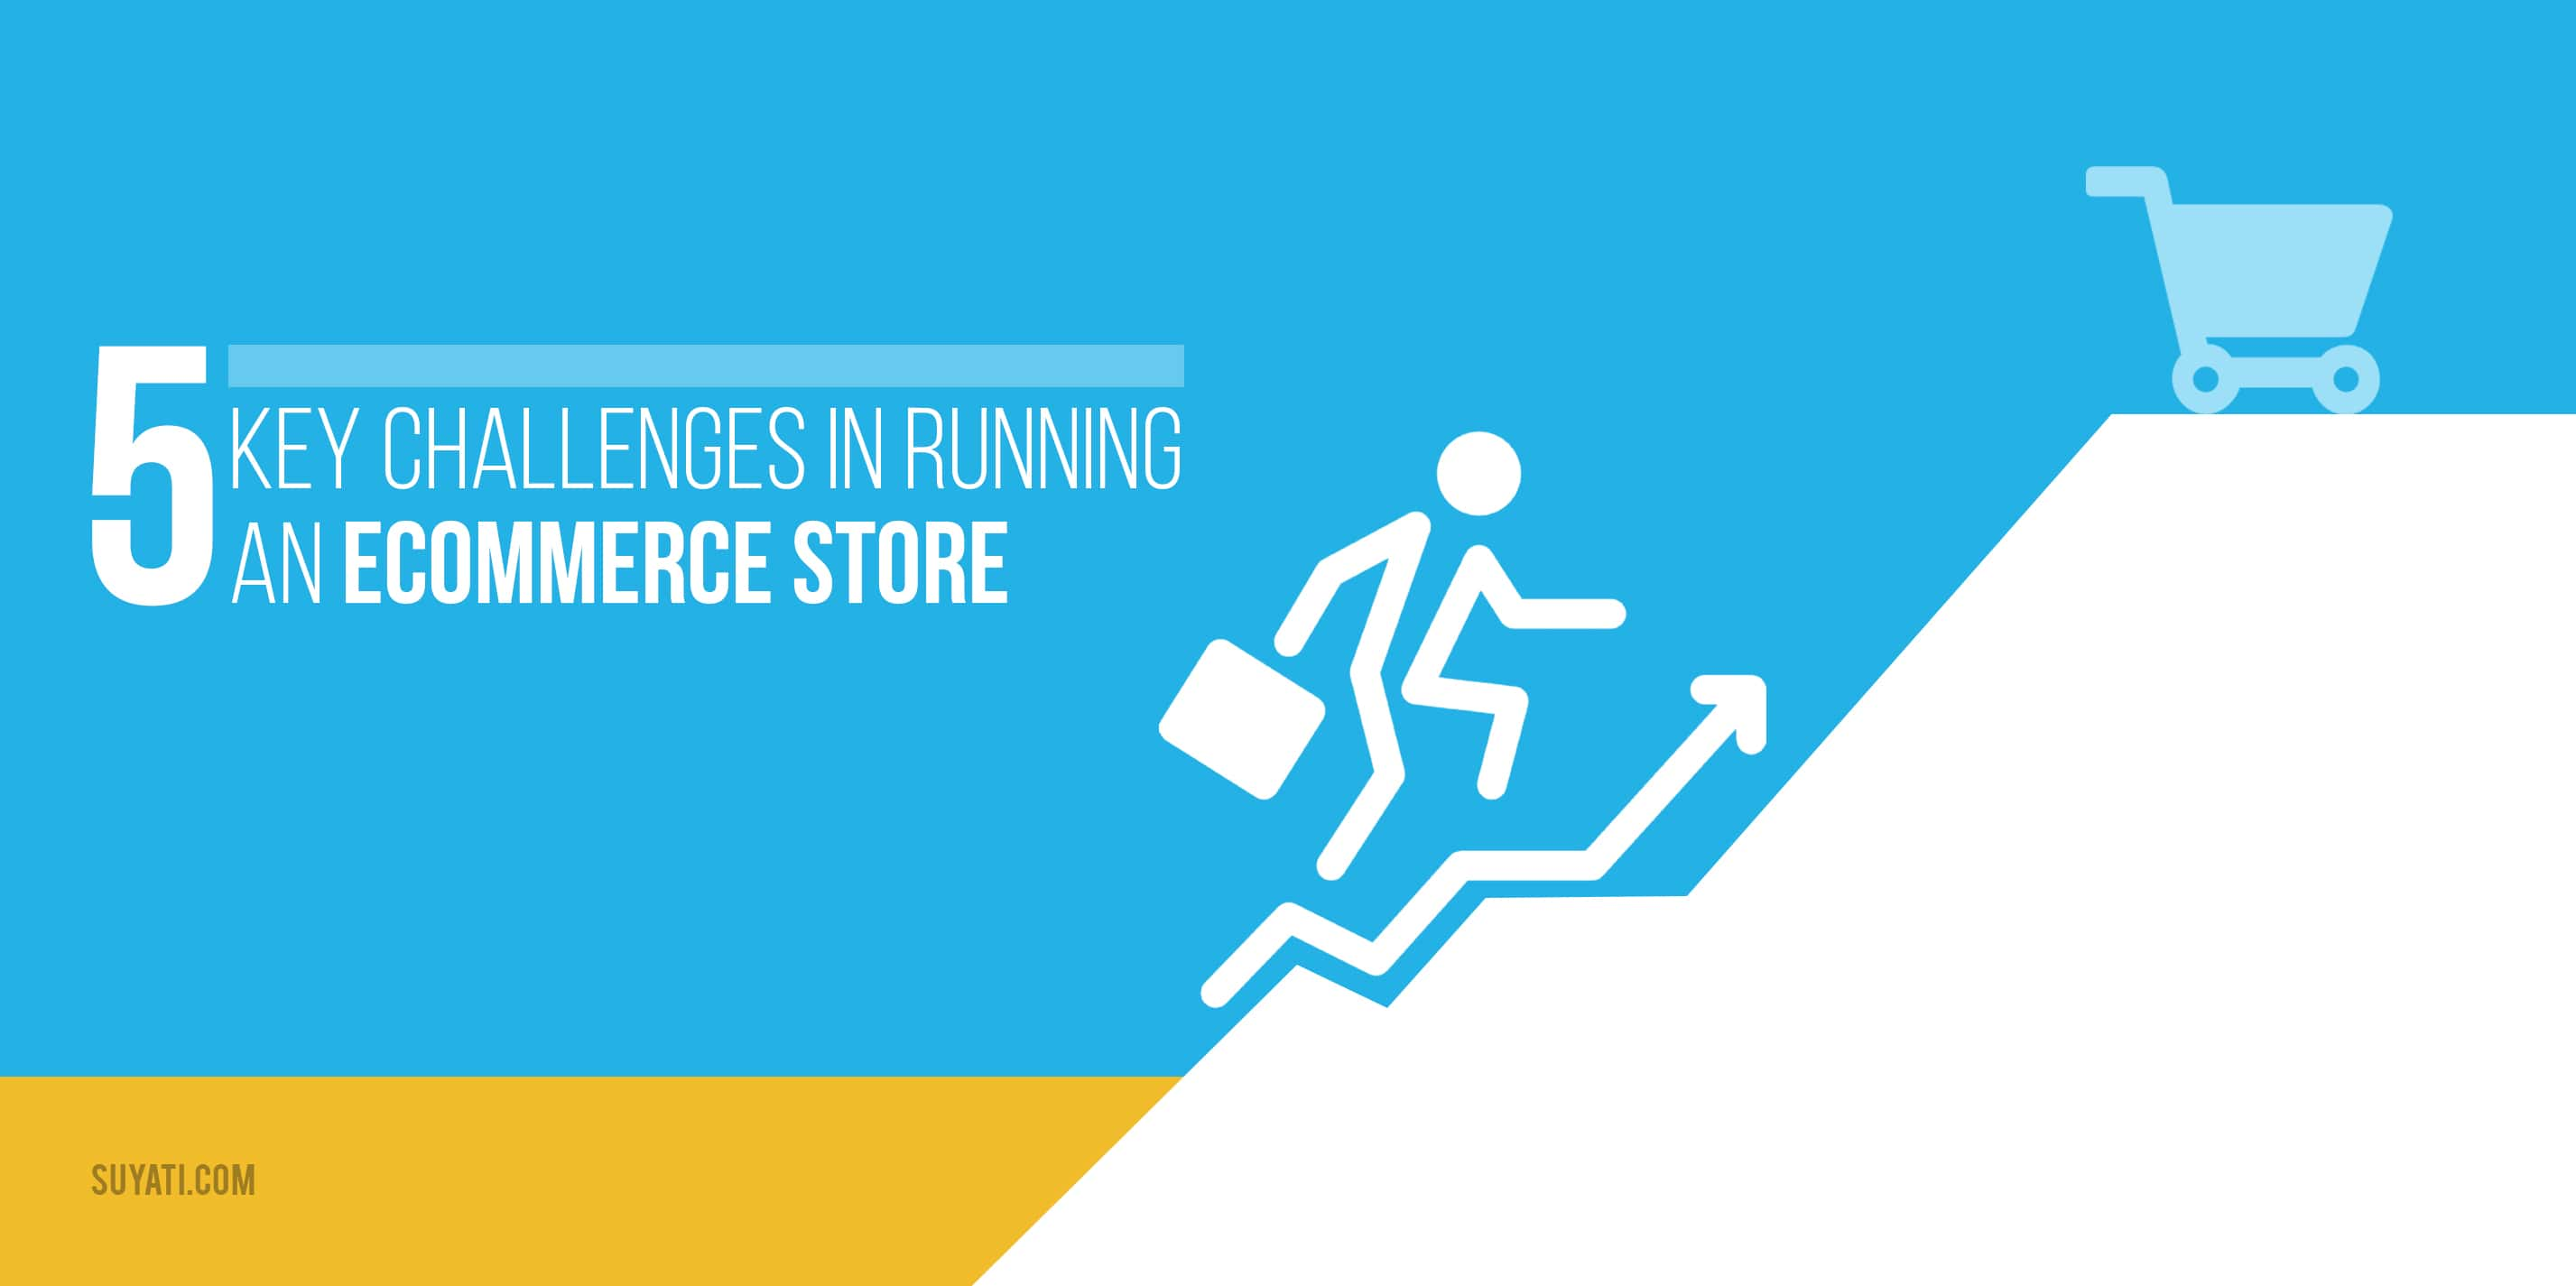 5 key challenges in running an ecommerce store